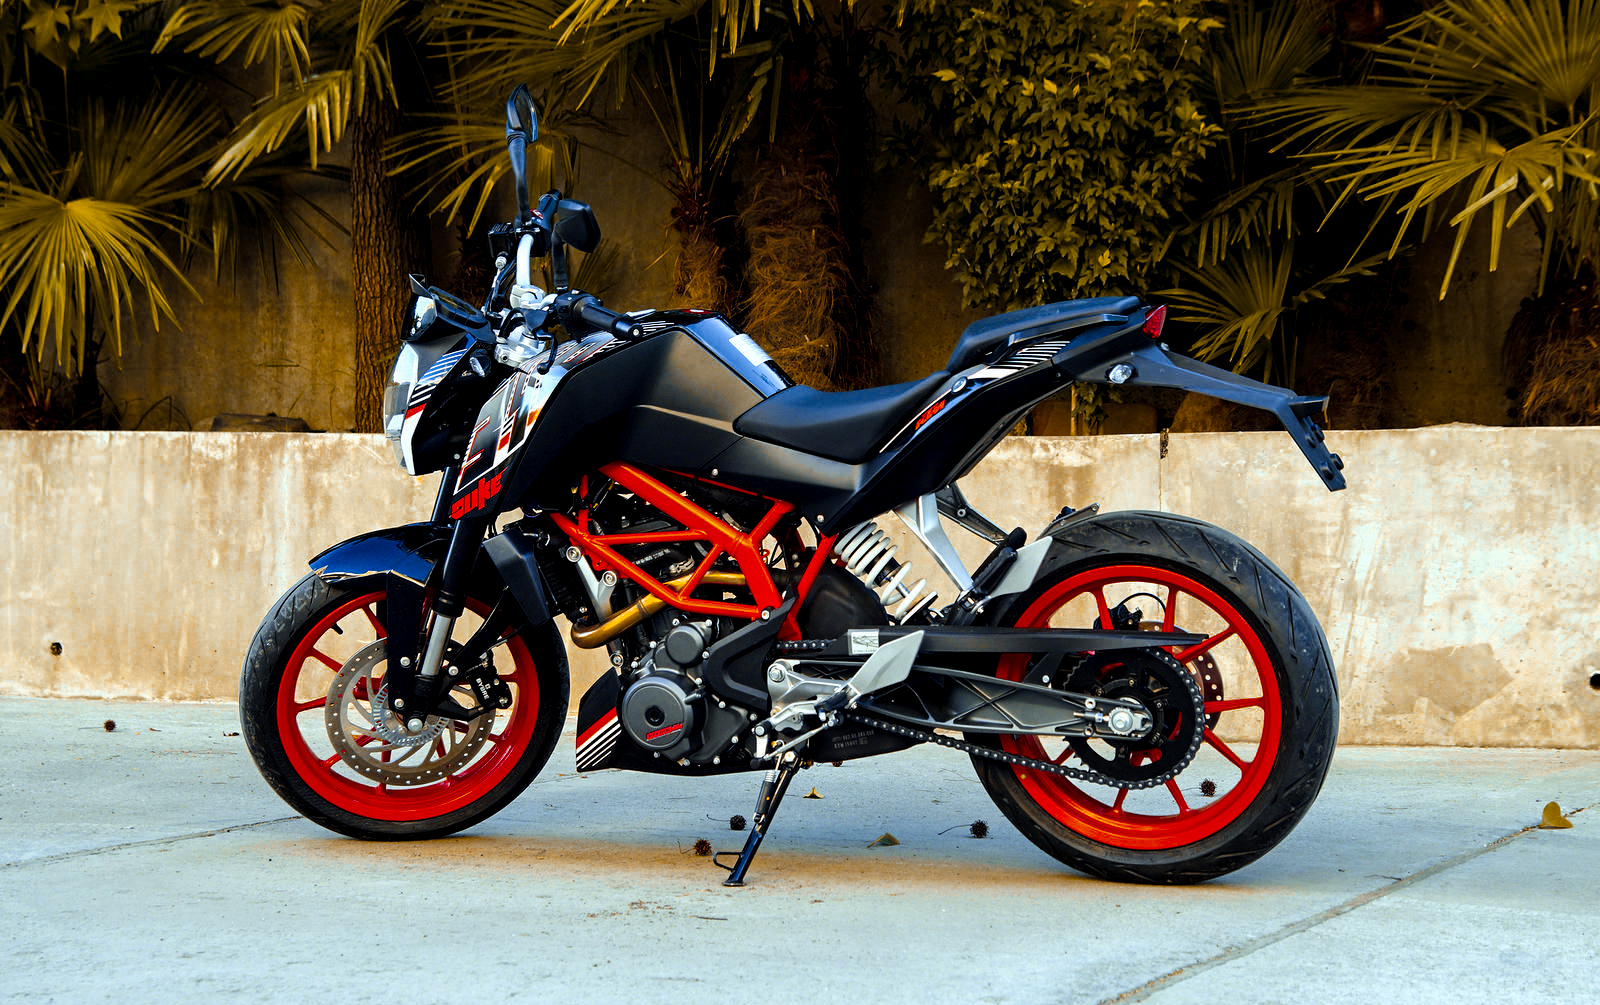 Background Images For Editing Hd Bike: All Ktm Duke Hd Backgrounds Download Now ? Best Editing